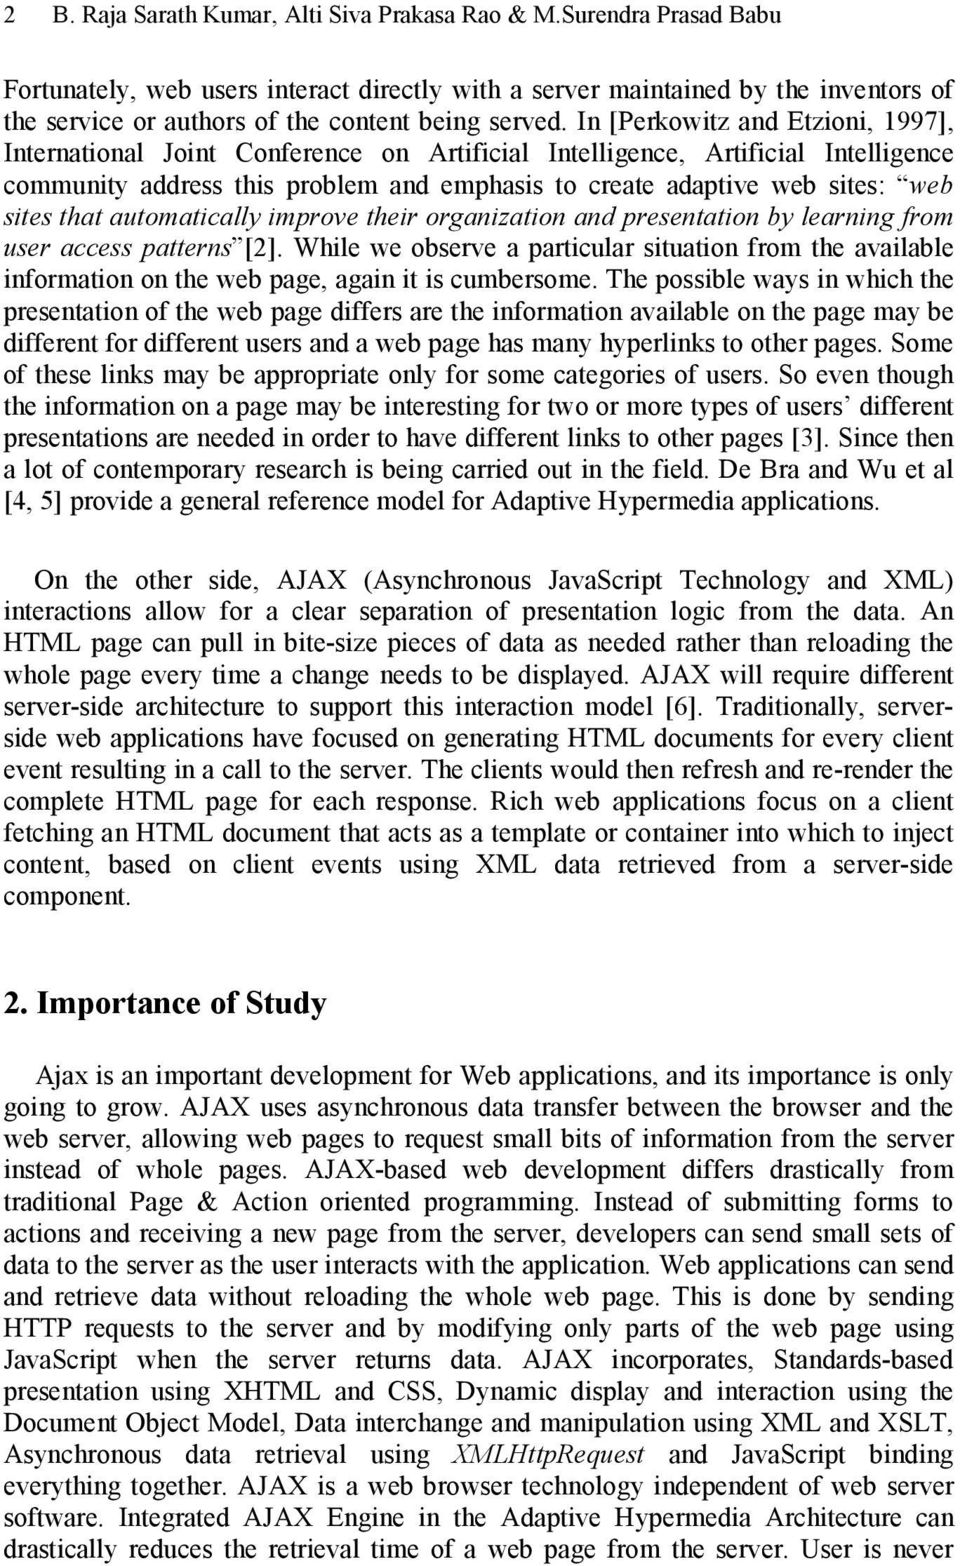 In [Perkowitz and Etzioni, 1997], International Joint Conference on Artificial Intelligence, Artificial Intelligence community address this problem and emphasis to create adaptive web sites: web